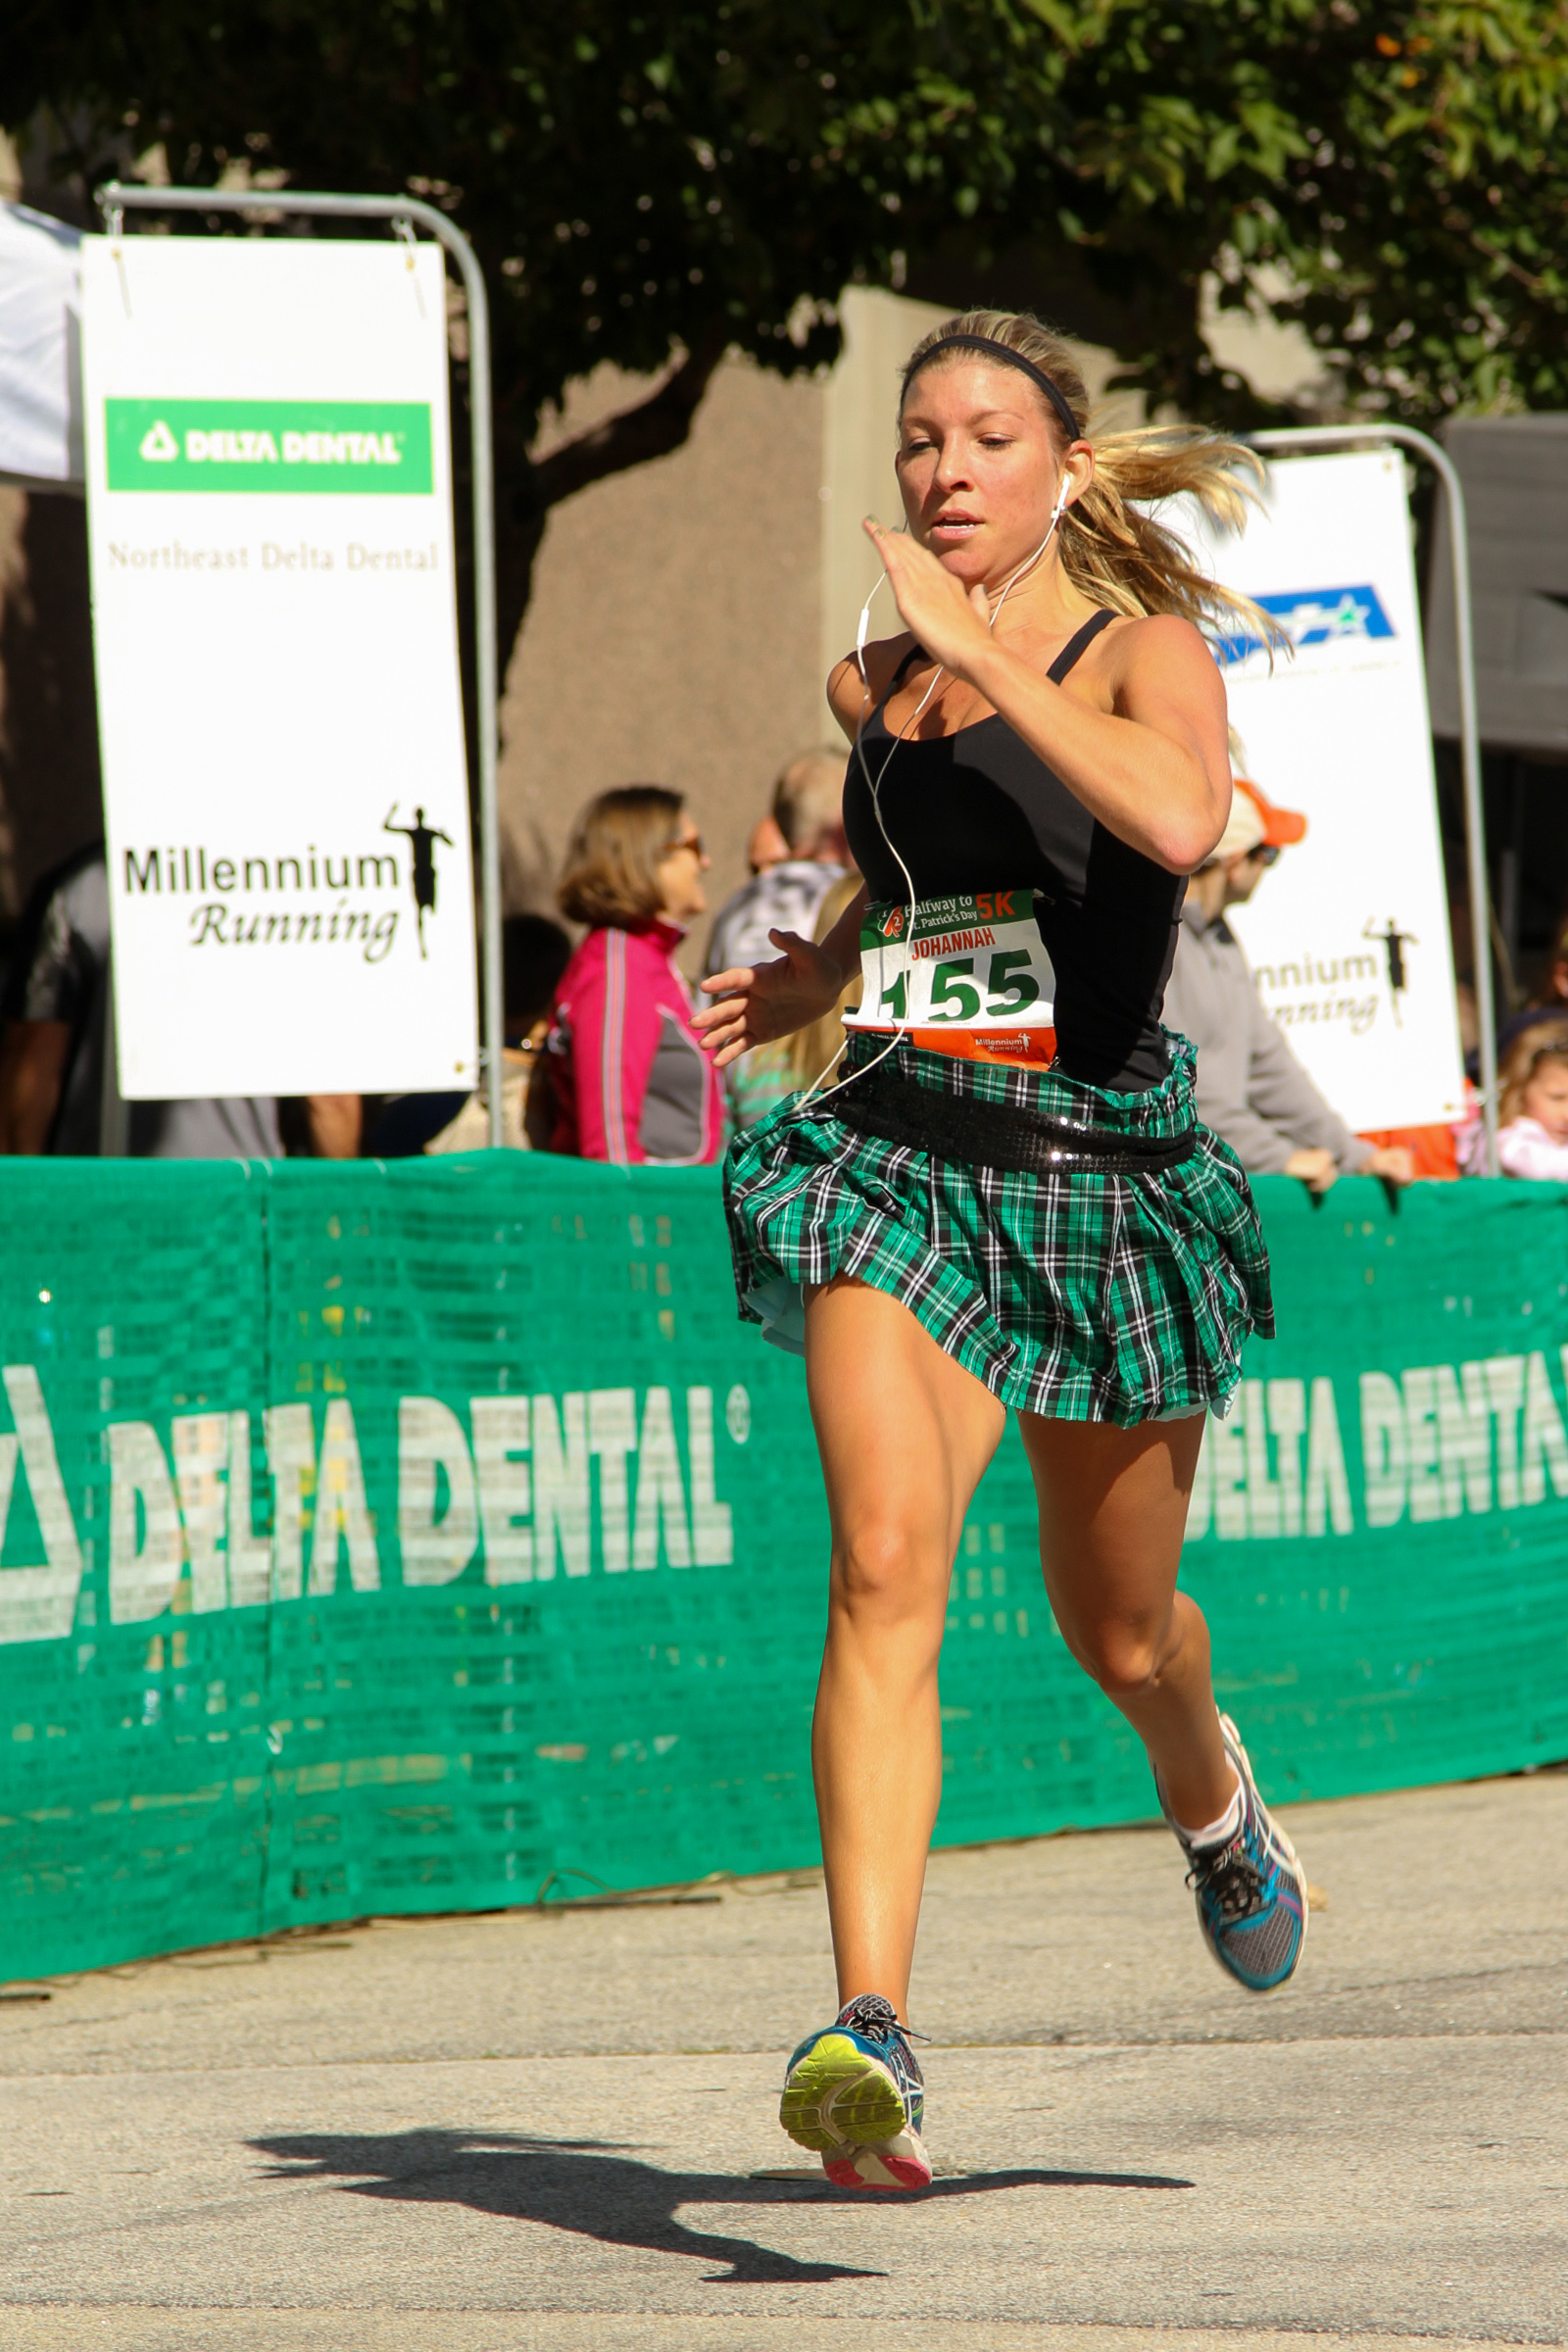 PHOTOS: Northeast Delta Dental Halfway to St. Patrick's Day 5K 2013